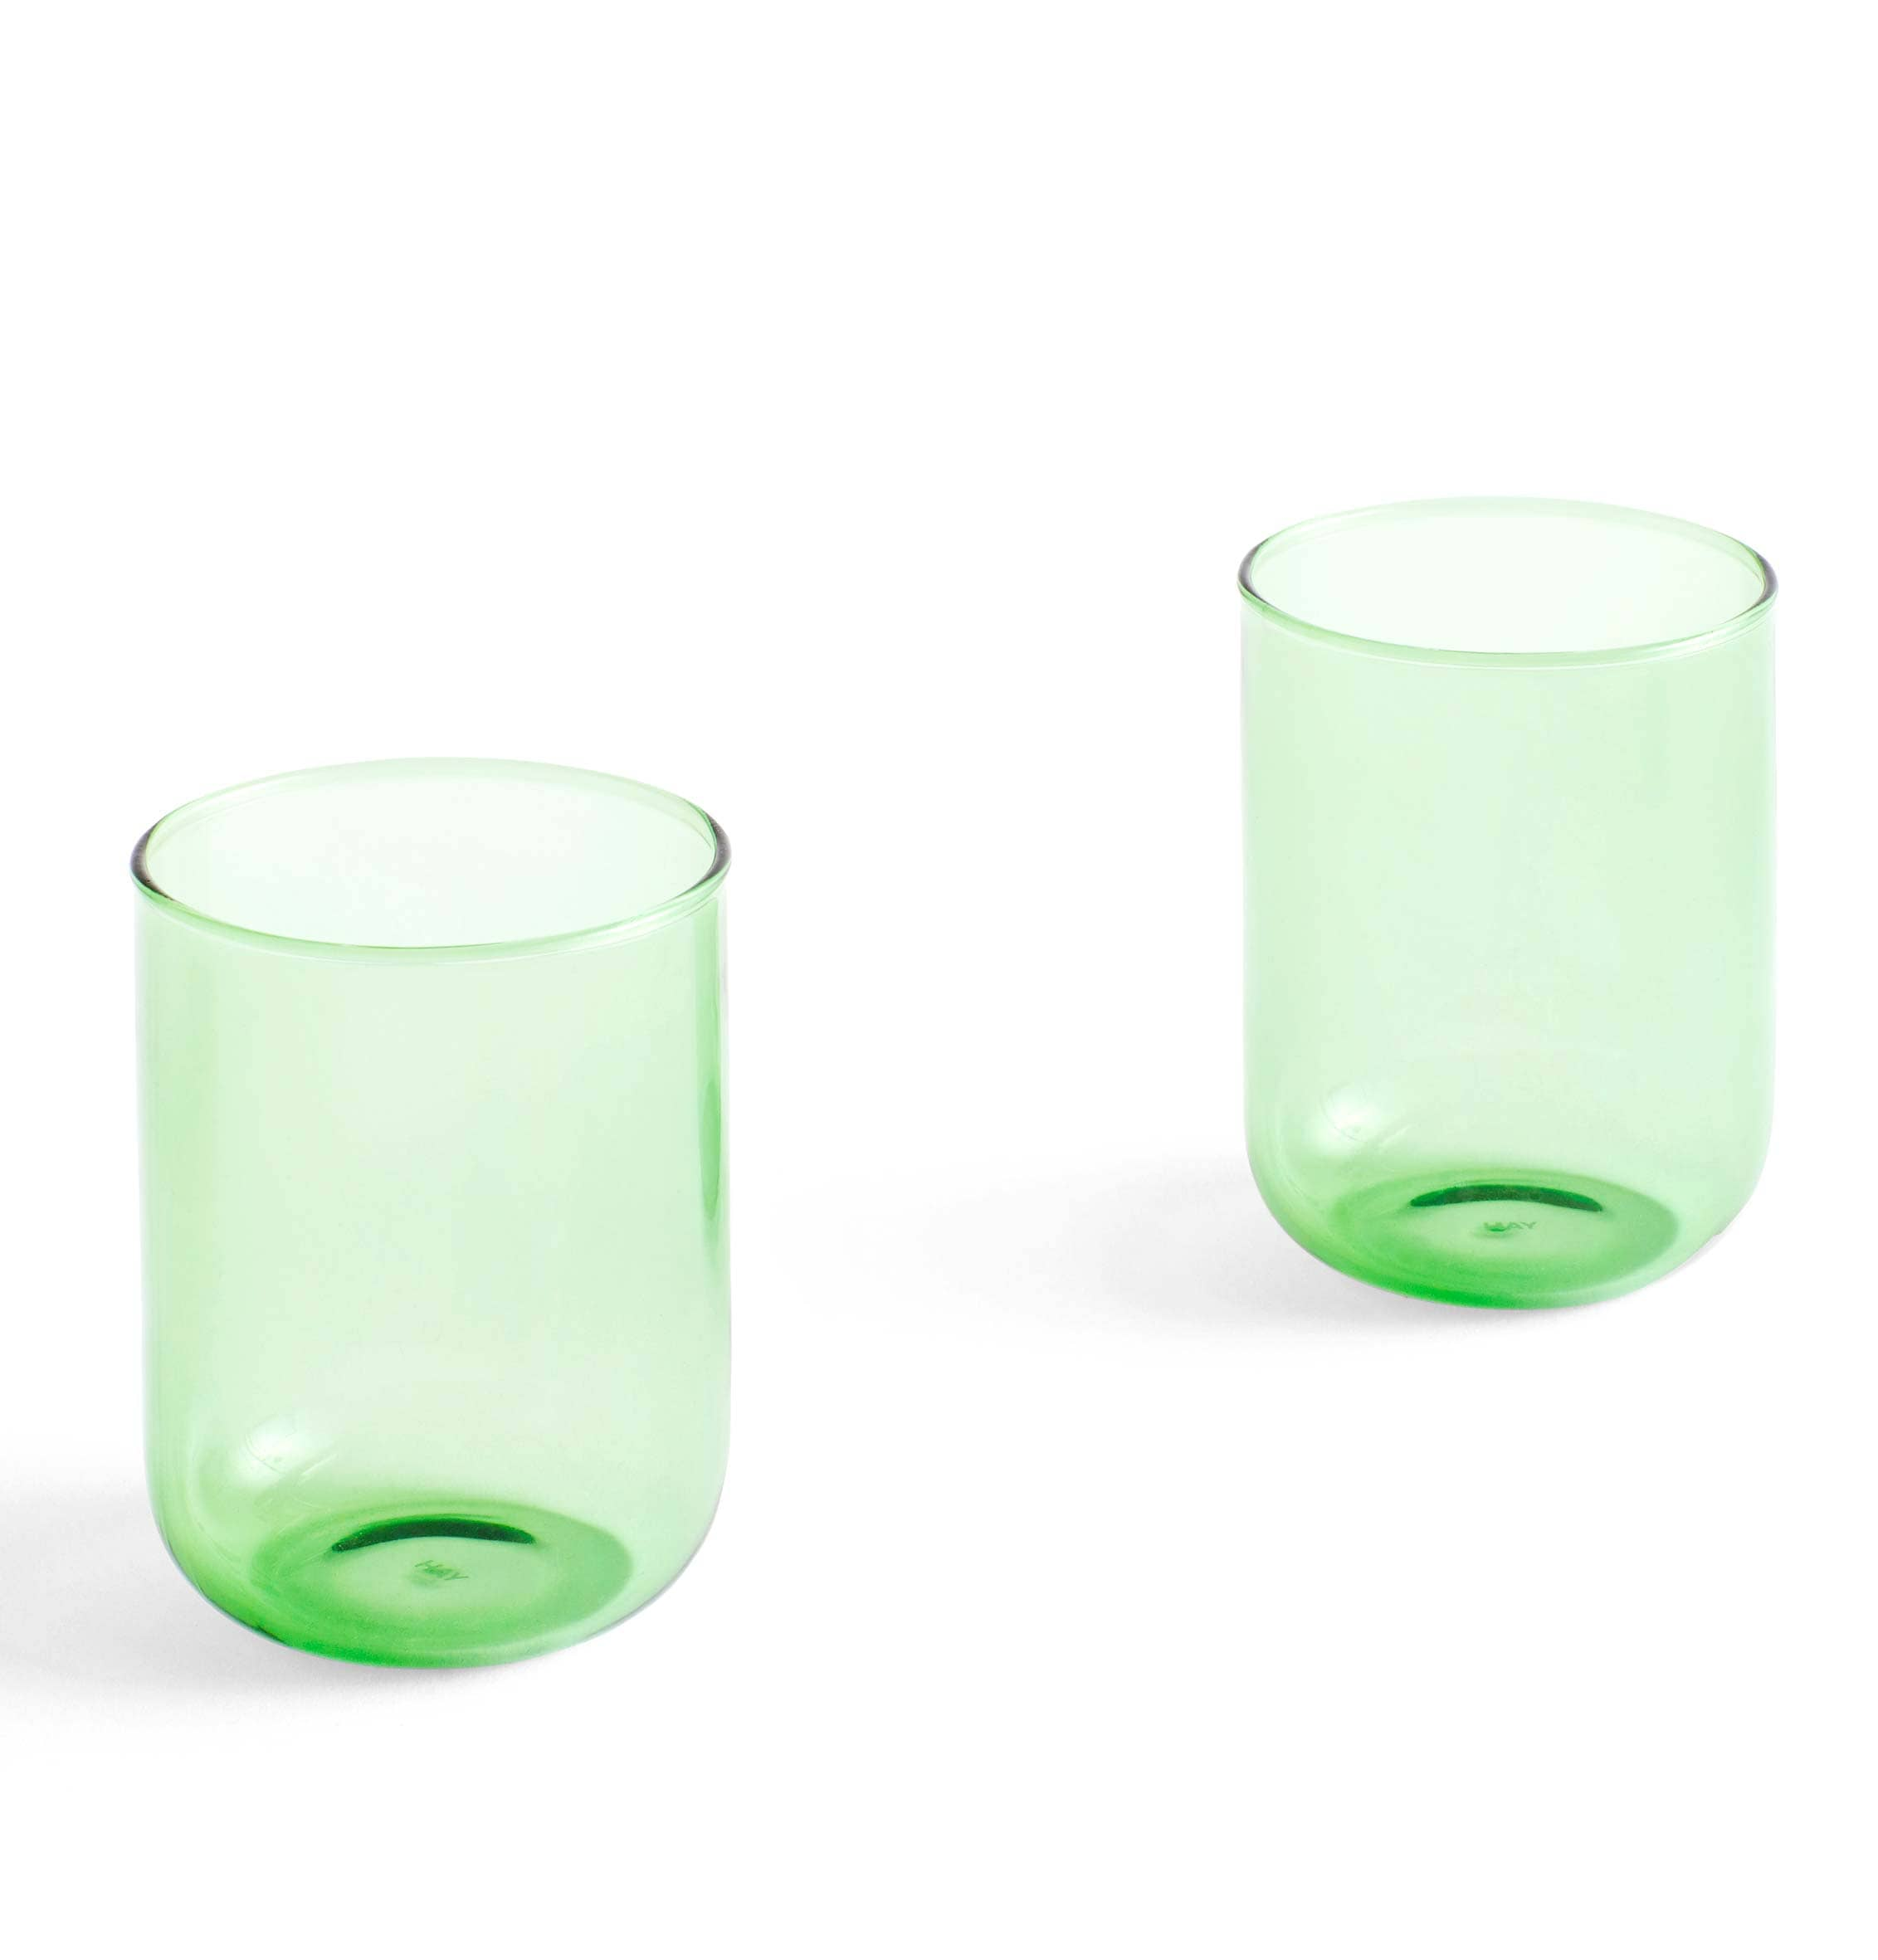 HAY Tint Tumbler – Green – 300ml – Set of 2